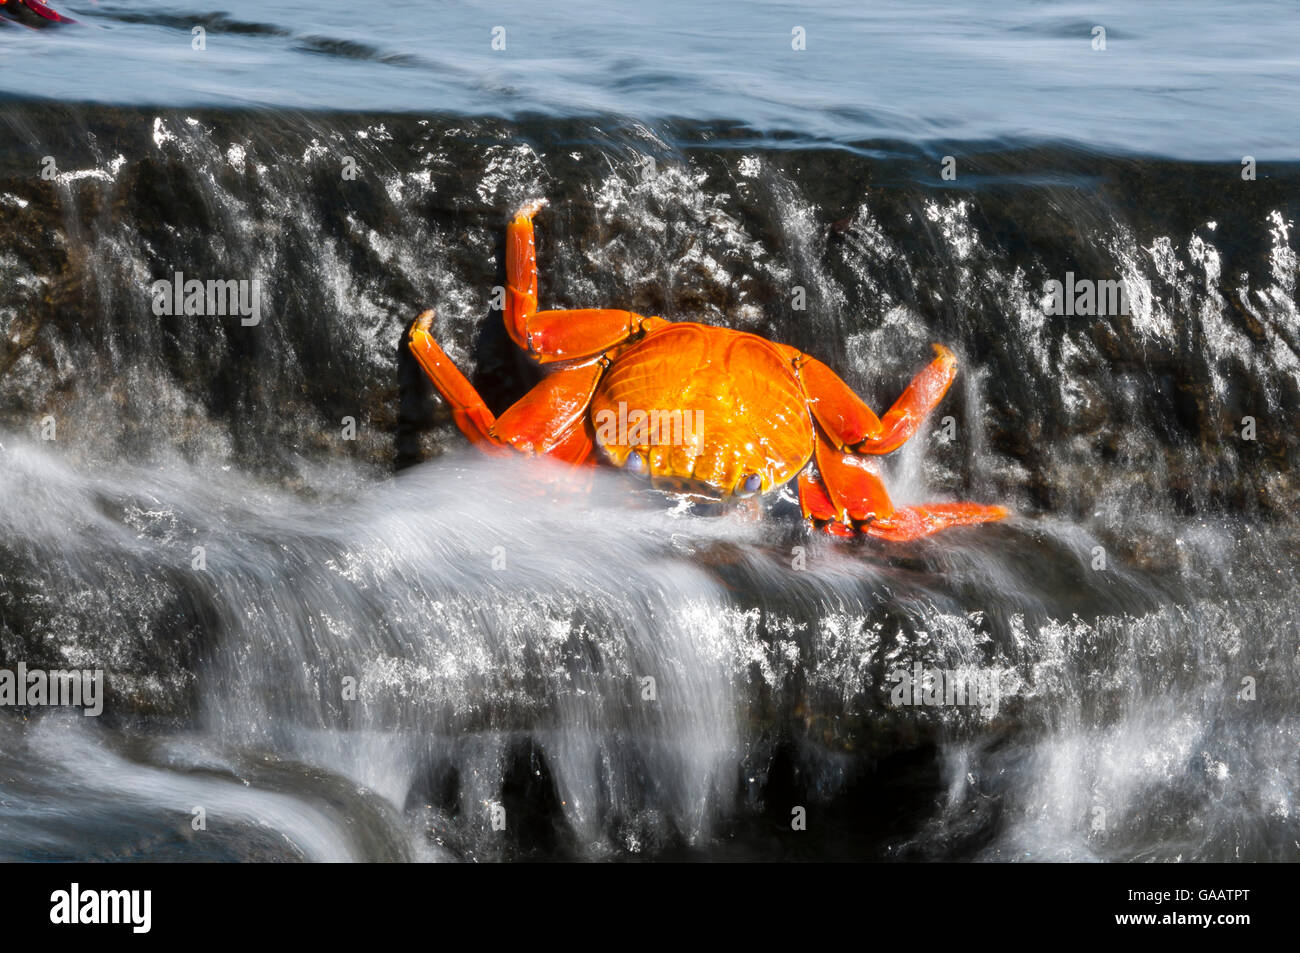 Dead Sally-lightfoot crab (Grapsus grapsus) washed up in surf, Puerto Egas, James Bay, Santiago Island, Galapagos, - Stock Image